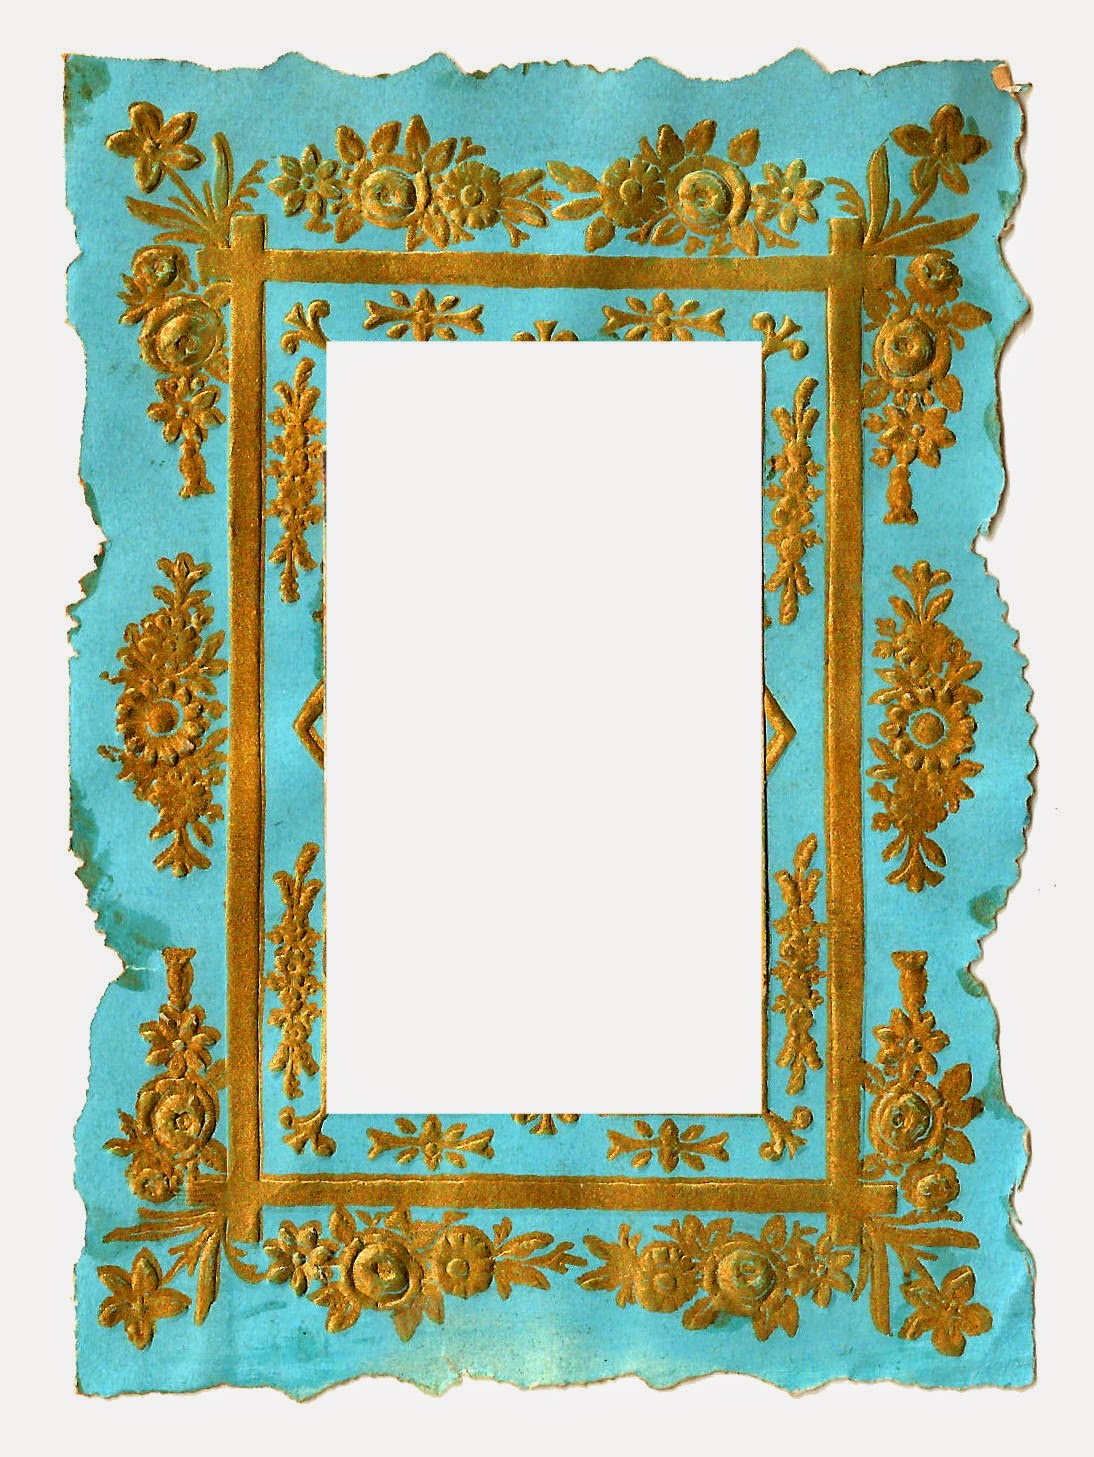 antique images digital vintage frame clip art of blue and gold rh antiqueimages blogspot com vintage picture frame clipart vintage frame clipart black and white